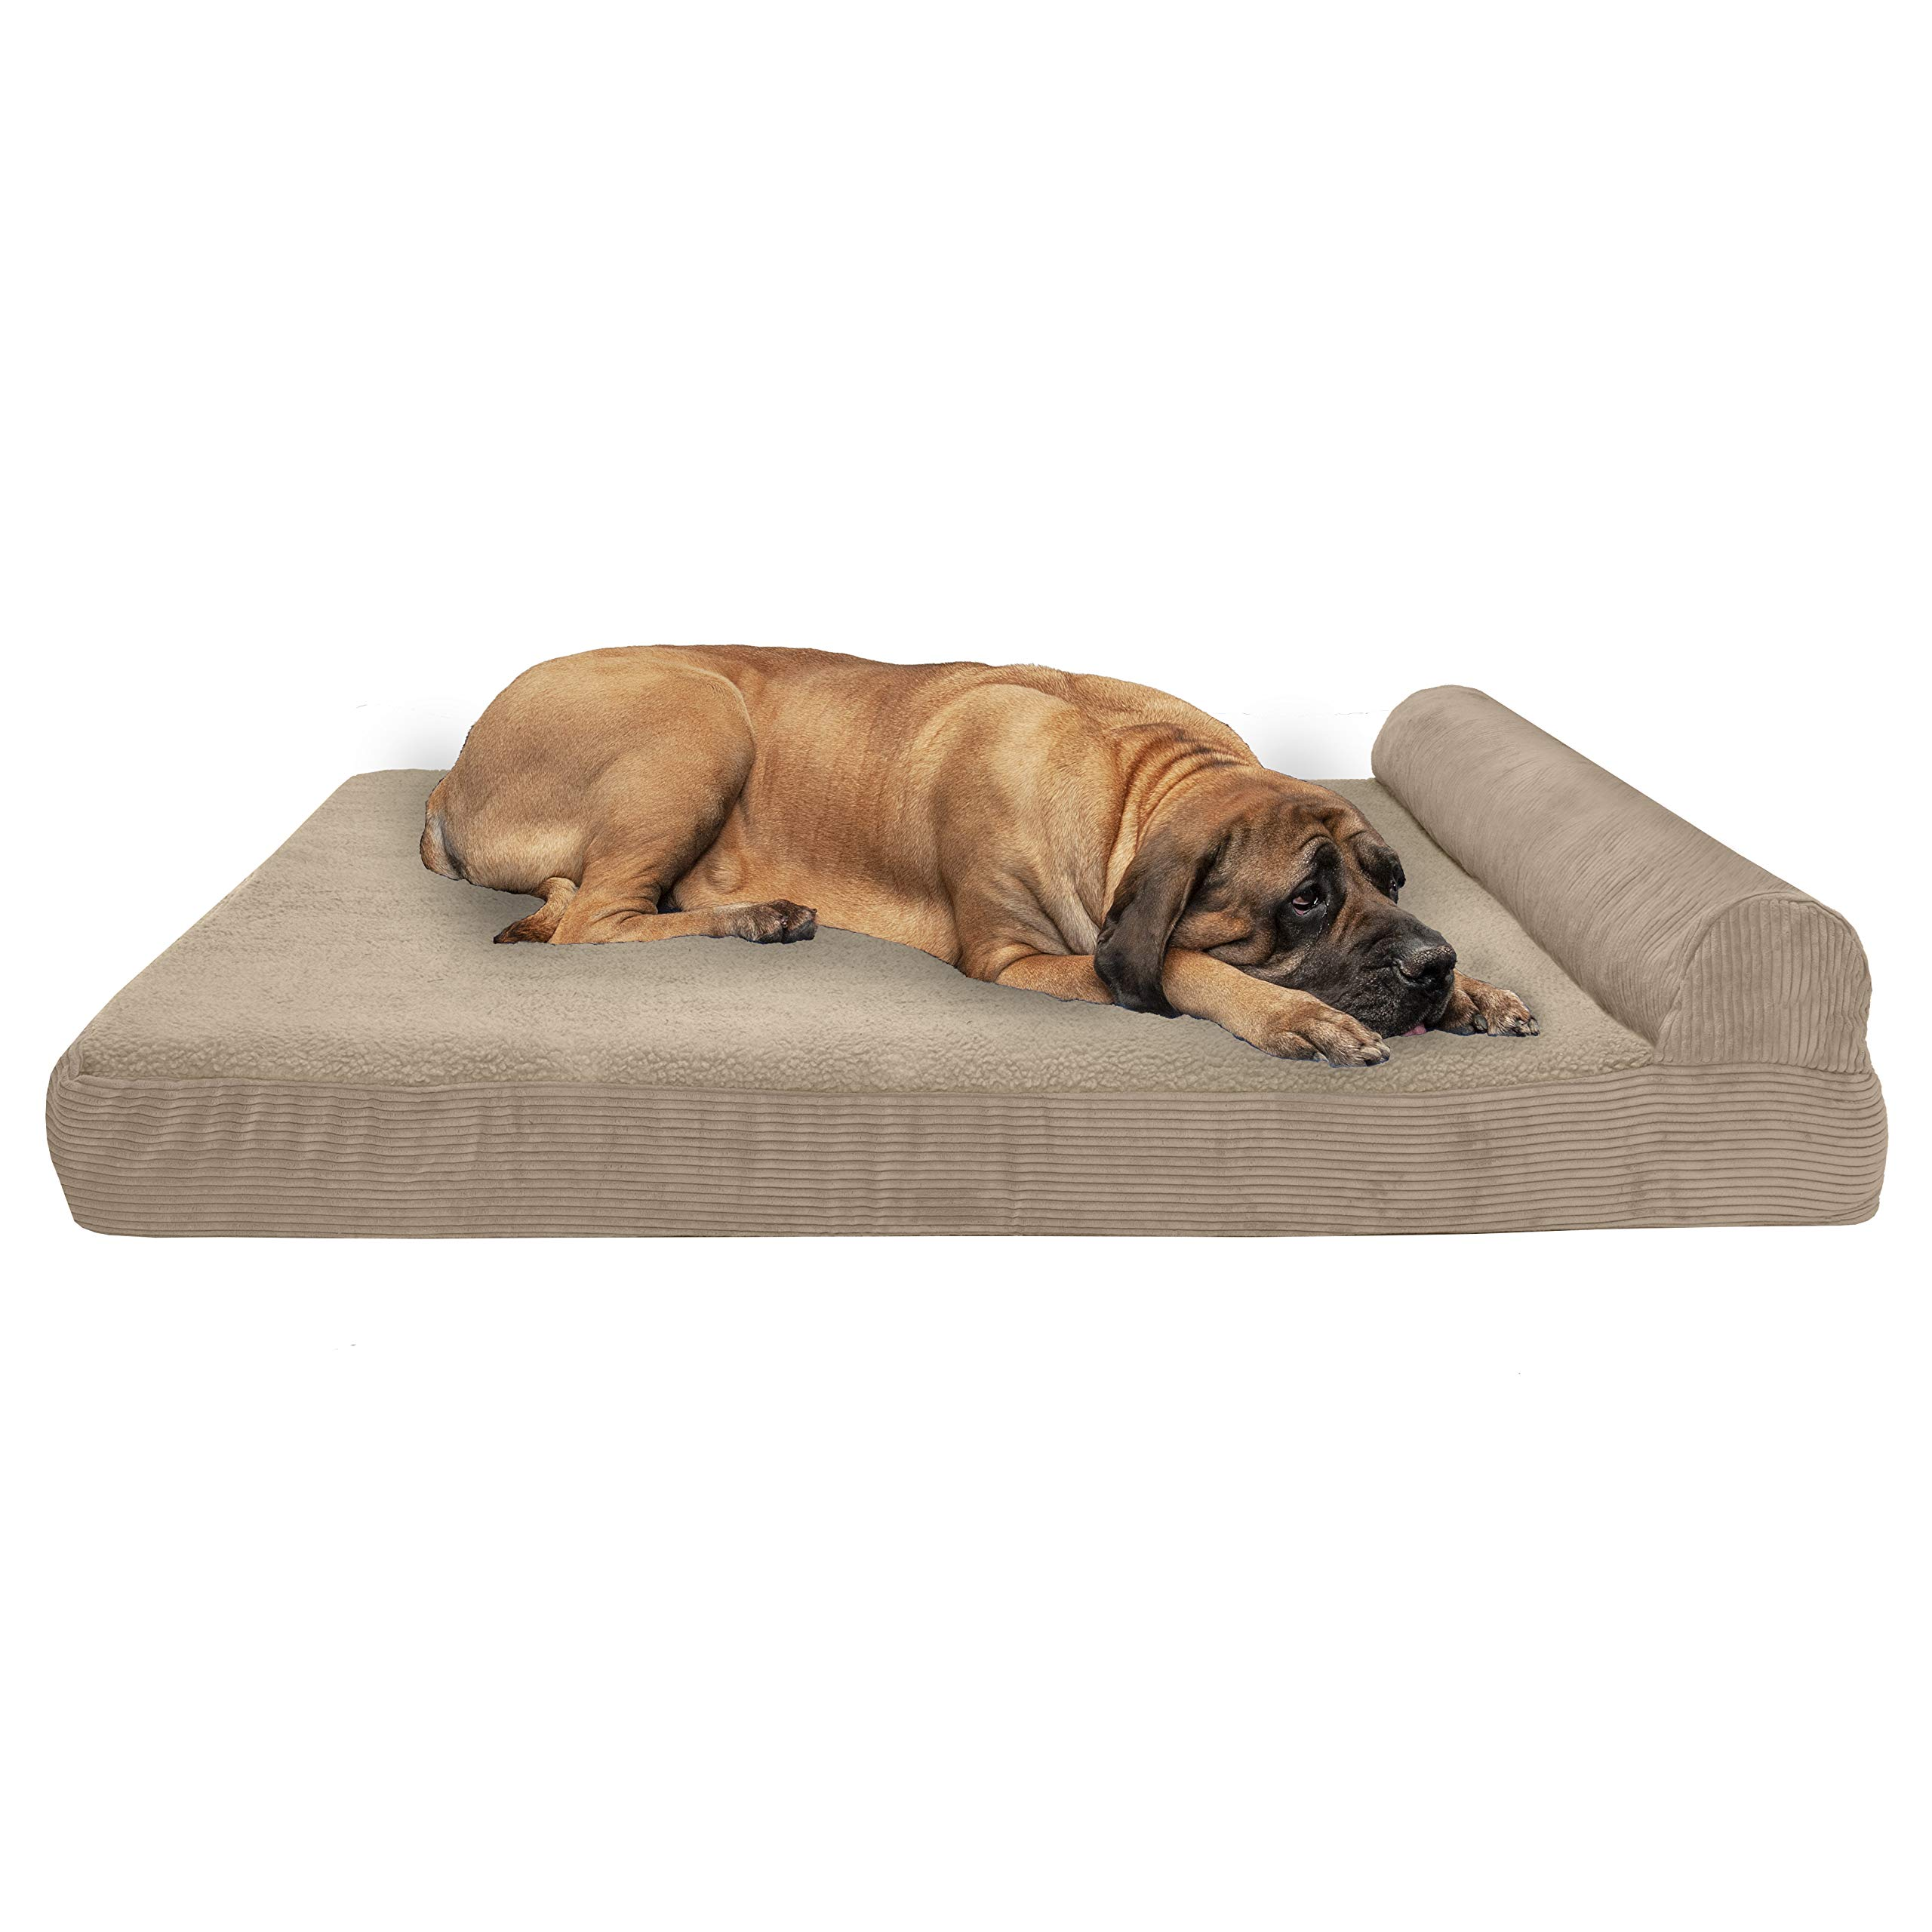 Furhaven Pet Dog Bed | Deluxe Orthopedic Faux Fleece & Corduroy Chaise Lounge Living Room Couch Pet Bed w/ Removable Cover for Dogs & Cats, Sandstone, Jumbo Plus by Furhaven